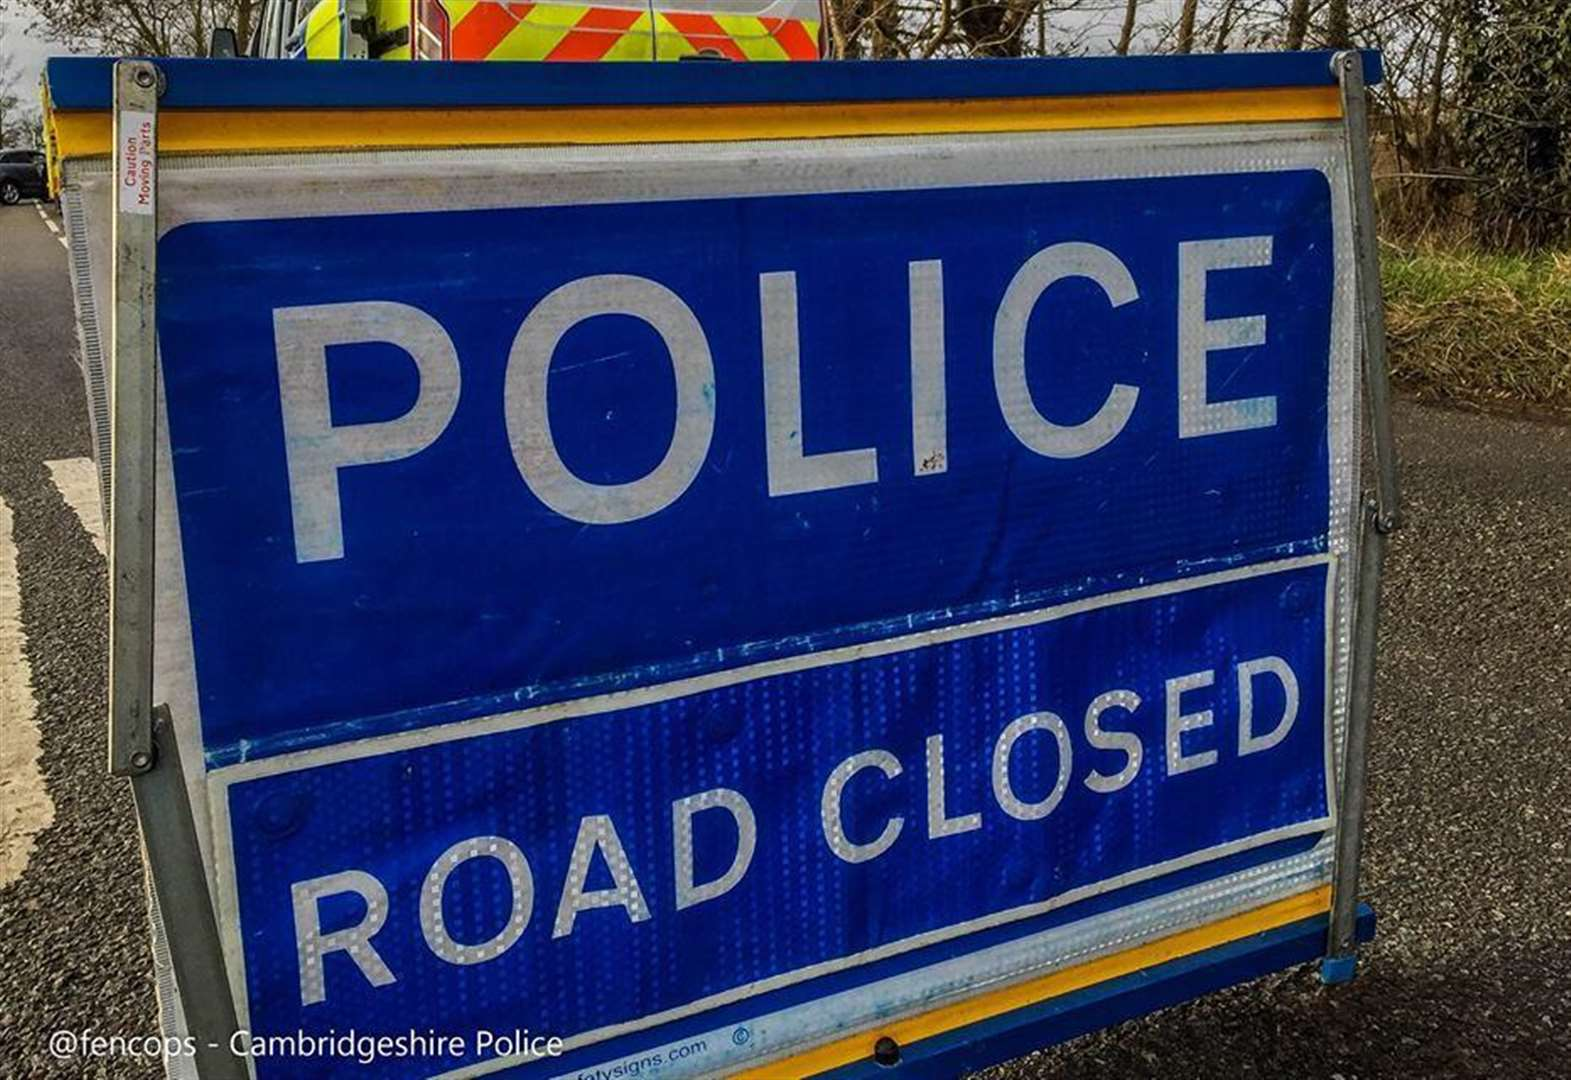 A141 towards March closed after tractor crash on Guyhirn roundabout